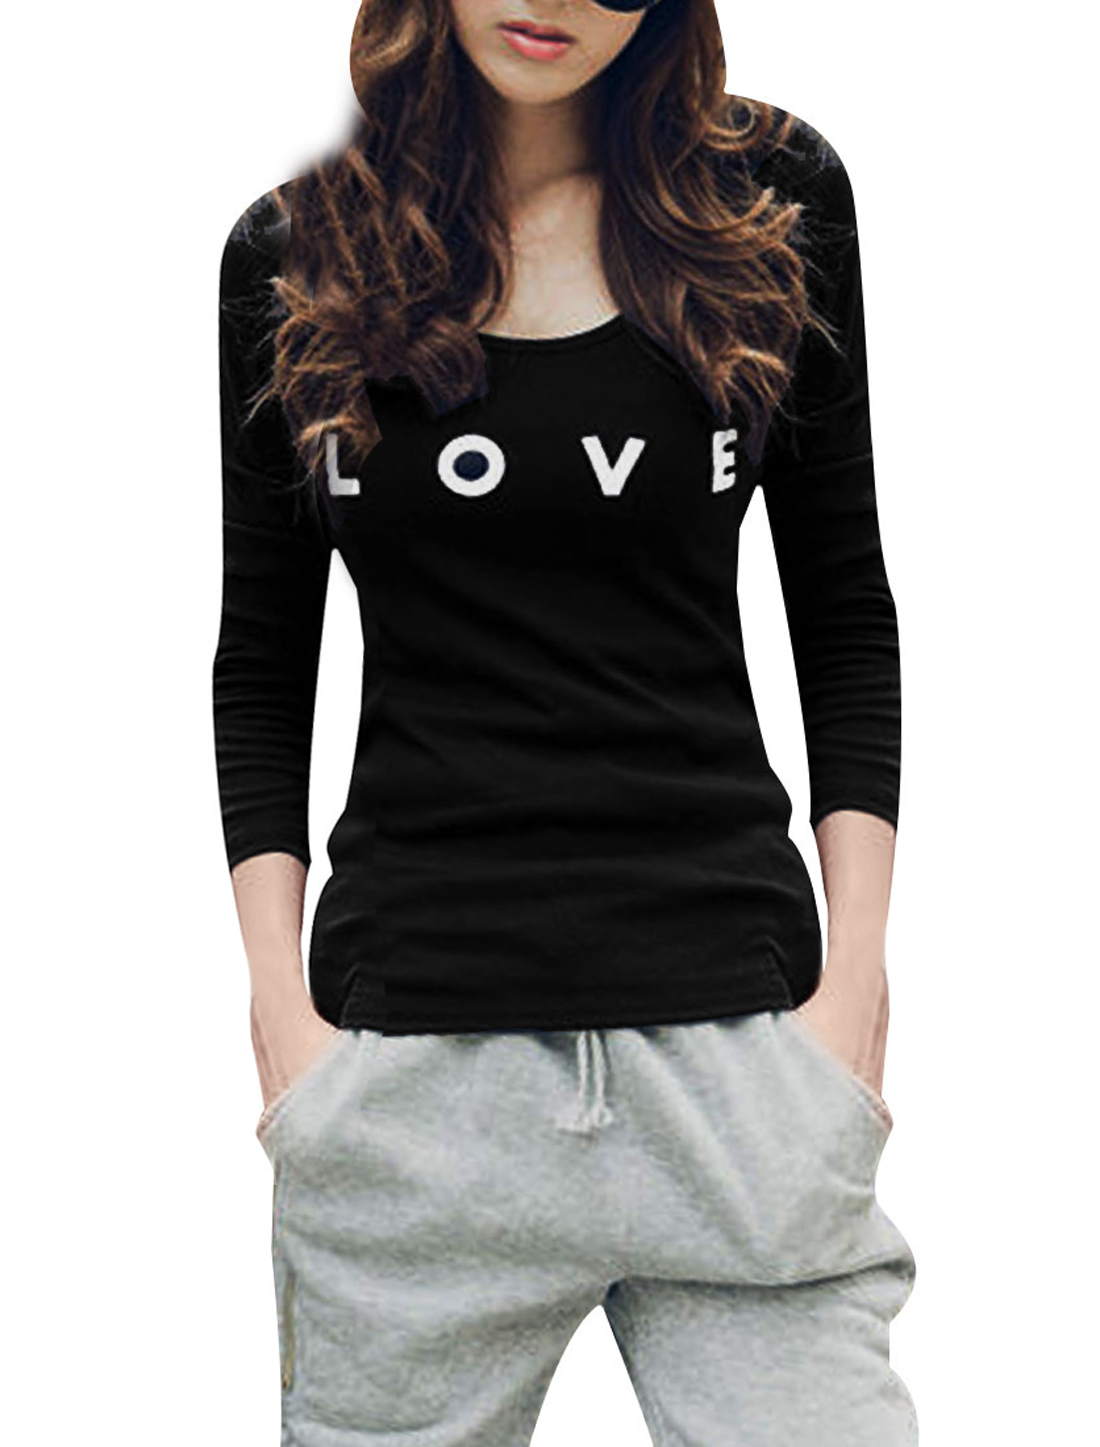 Ladies Black Scoop Neck Long Sleeve Loose Pullover Fall Leisure Top Shirt XS